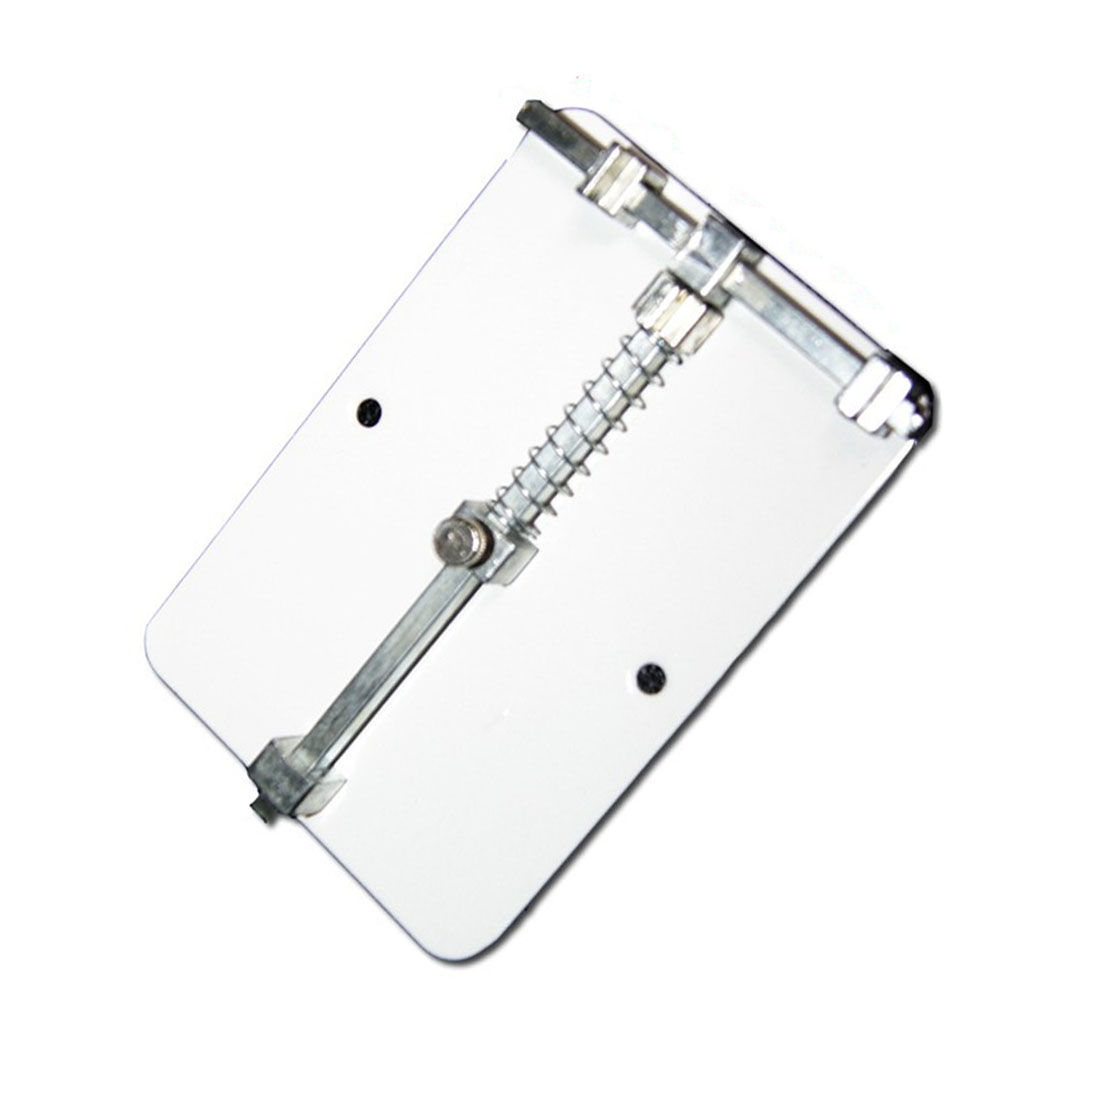 pcb holder repair tools fixture motherboard for mobile phone board work station platform fixed